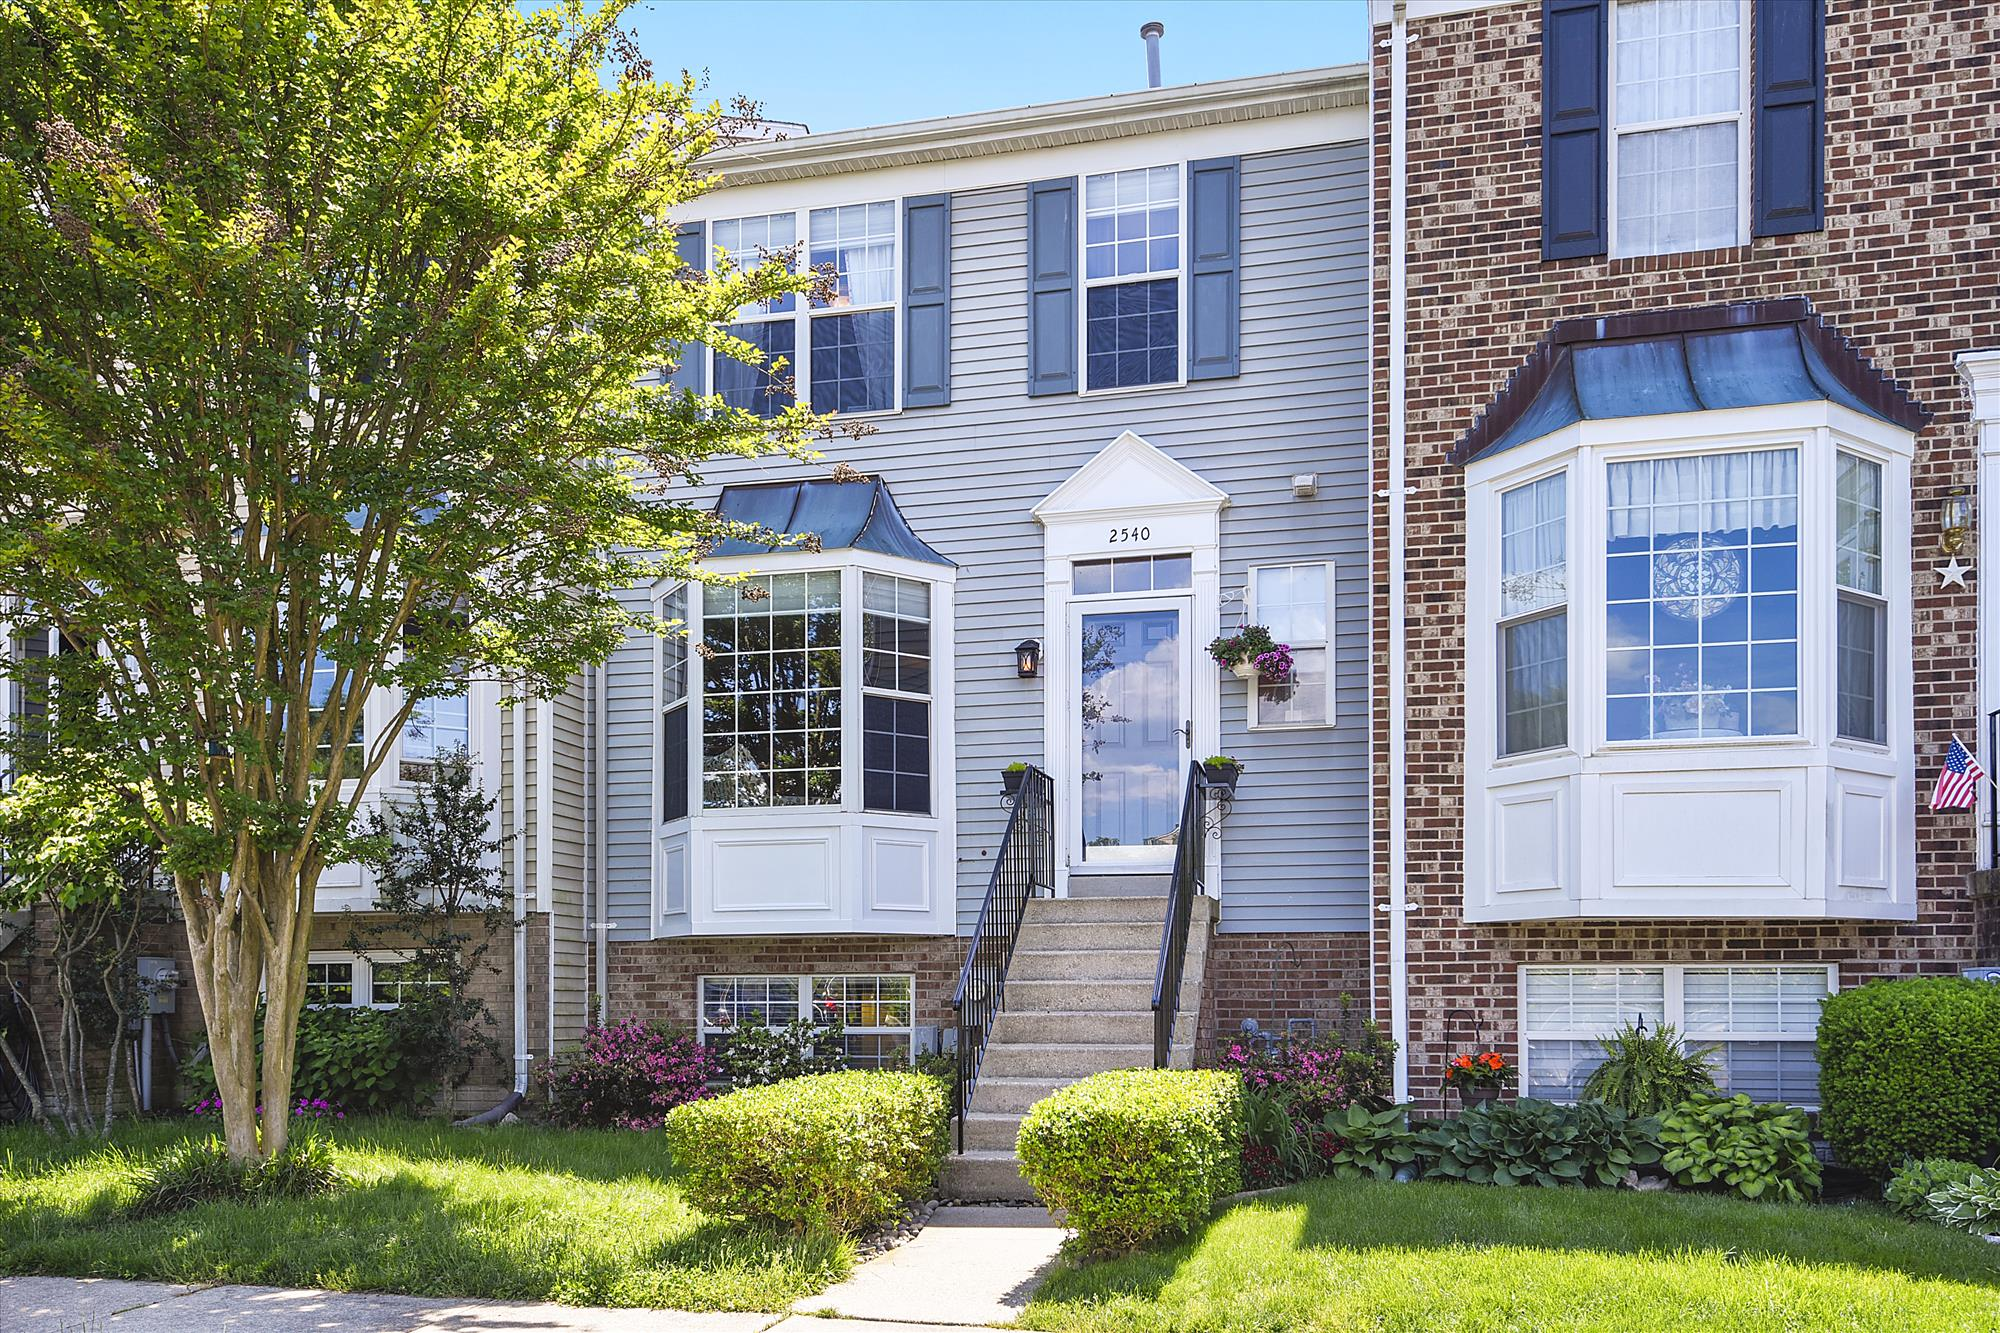 home for sale in crofton md